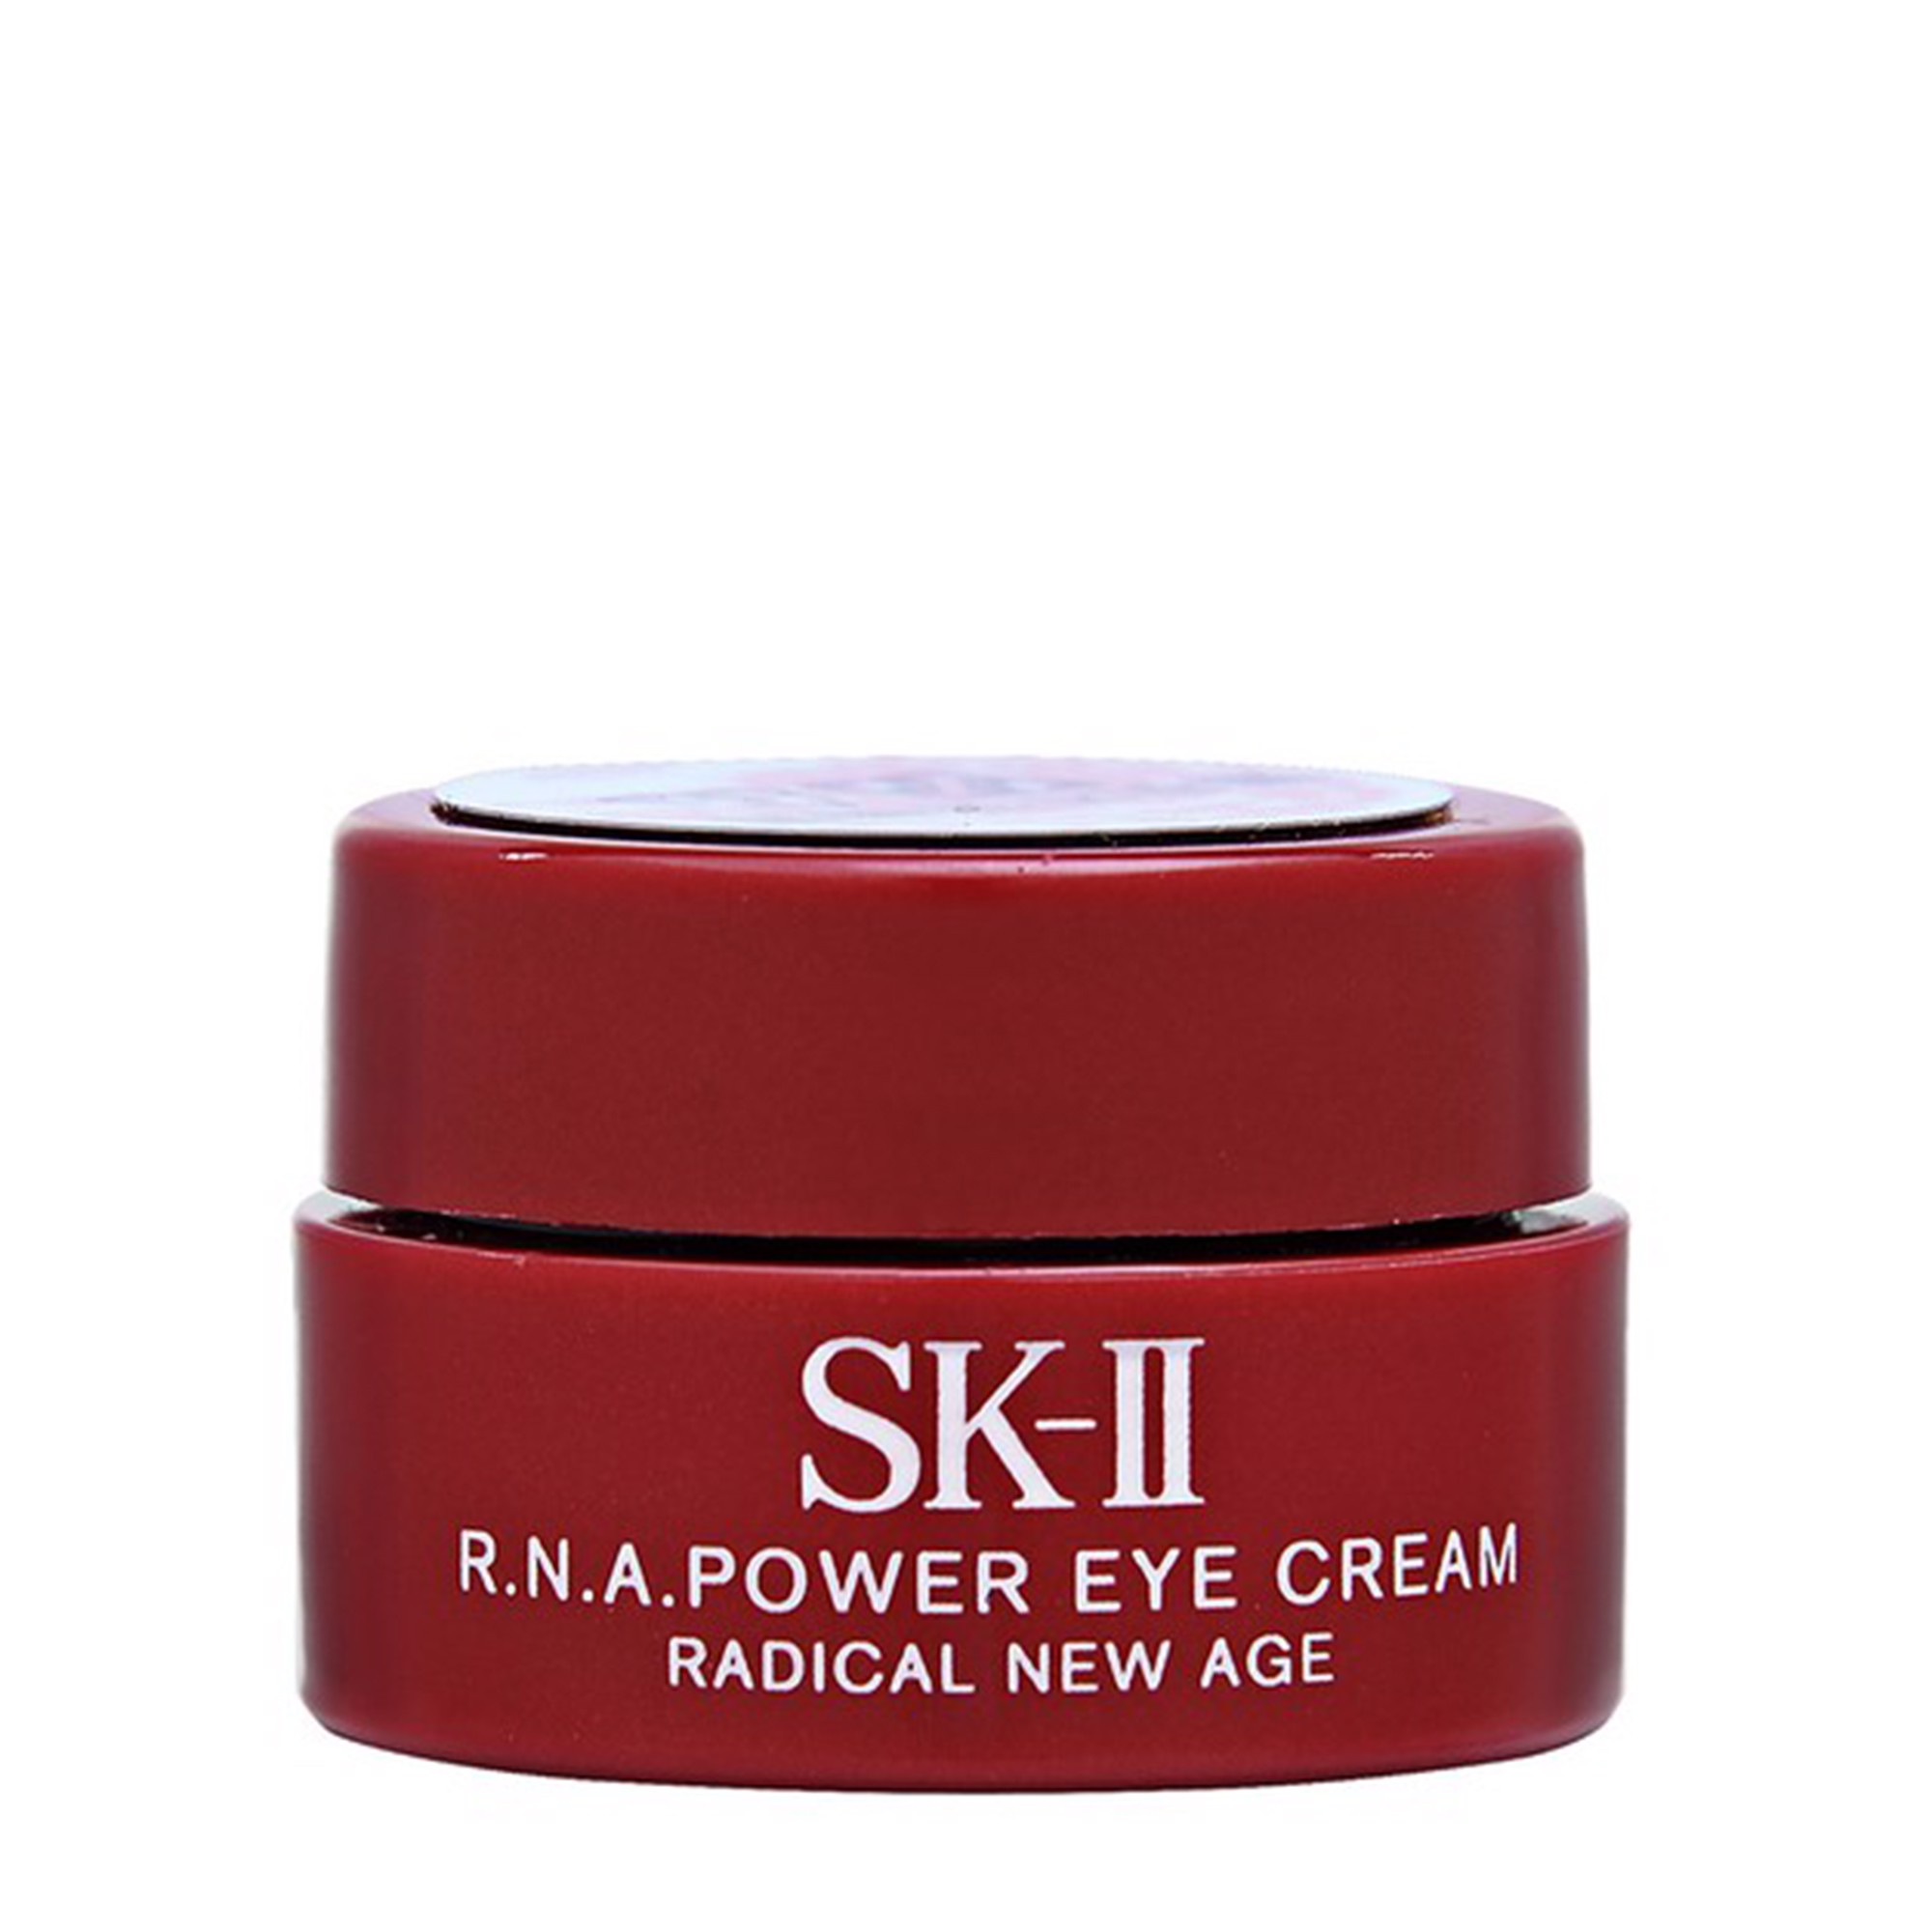 Kem mắt SK-II R.N.A Power Eye Cream (2.5g)